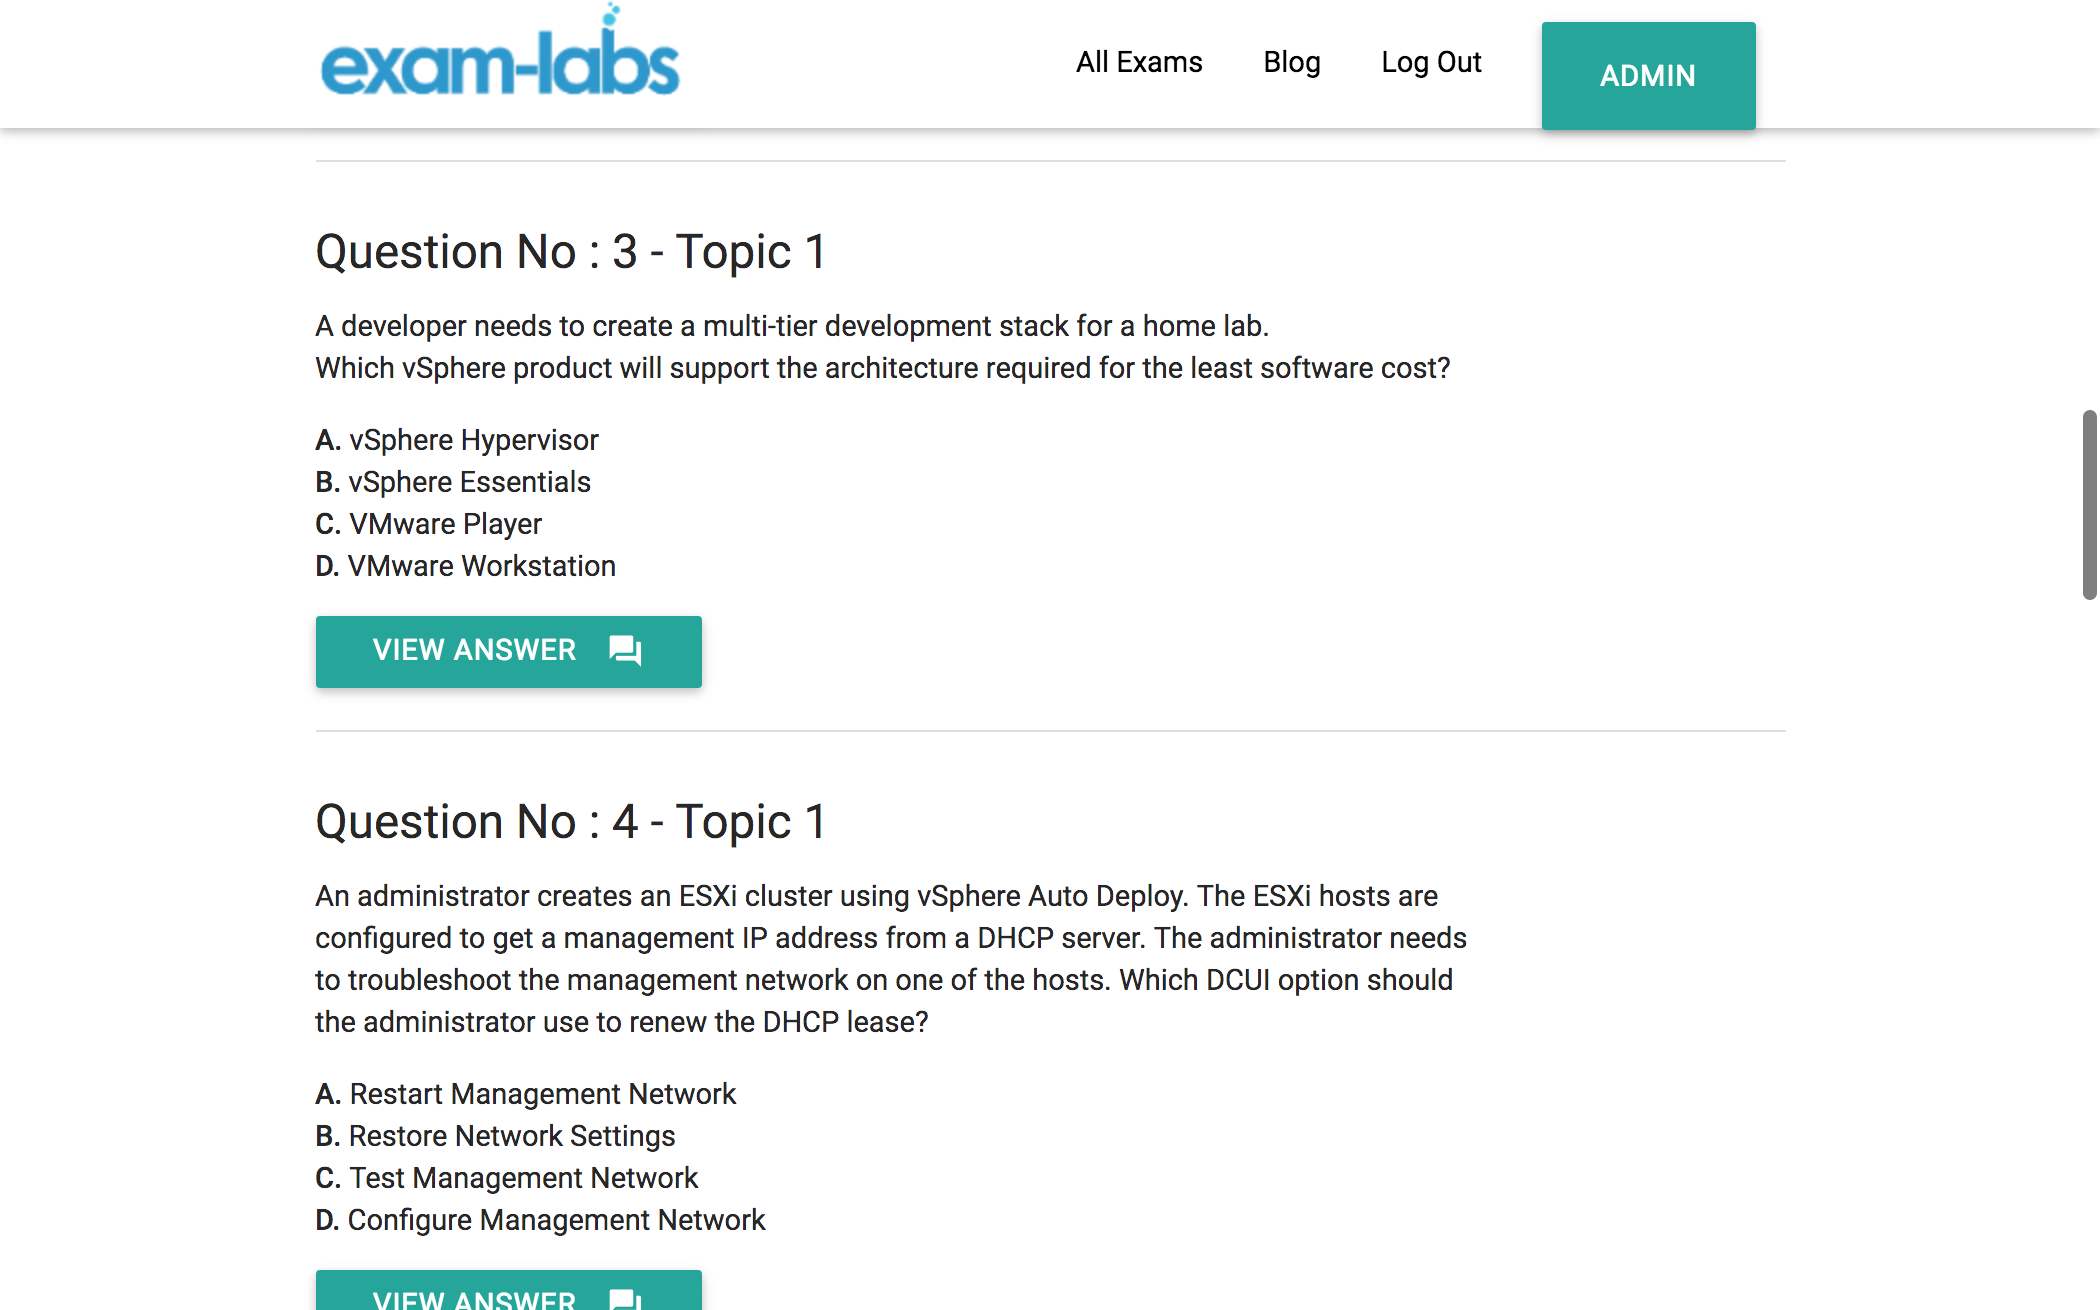 Vci550 vmware real exam questions 100 free exam labs vci550practiceexam1 vci550practiceexam2 vci550practiceexam3 xflitez Images